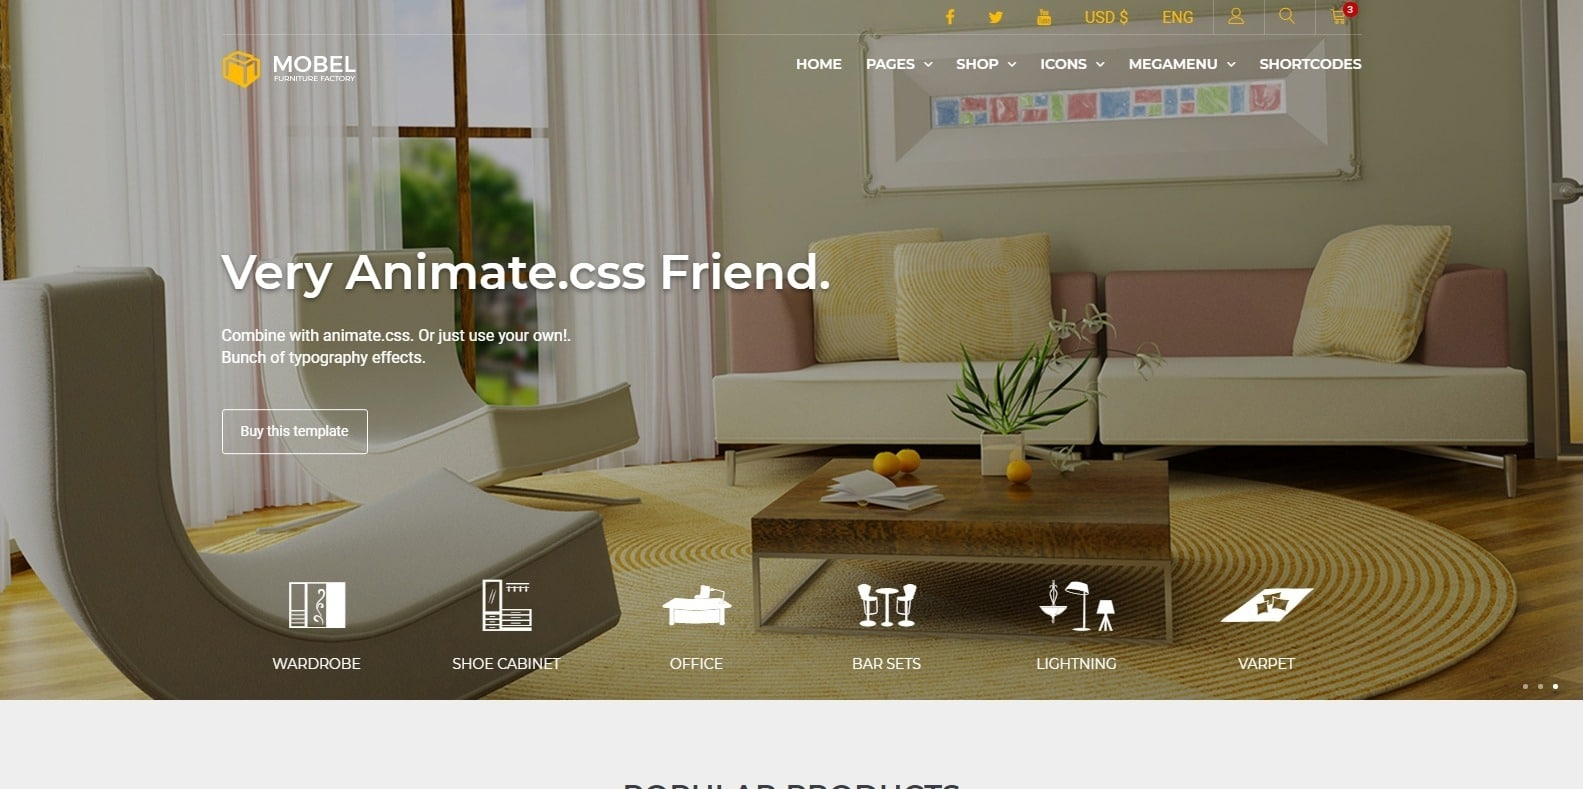 mobel-interior-design-template